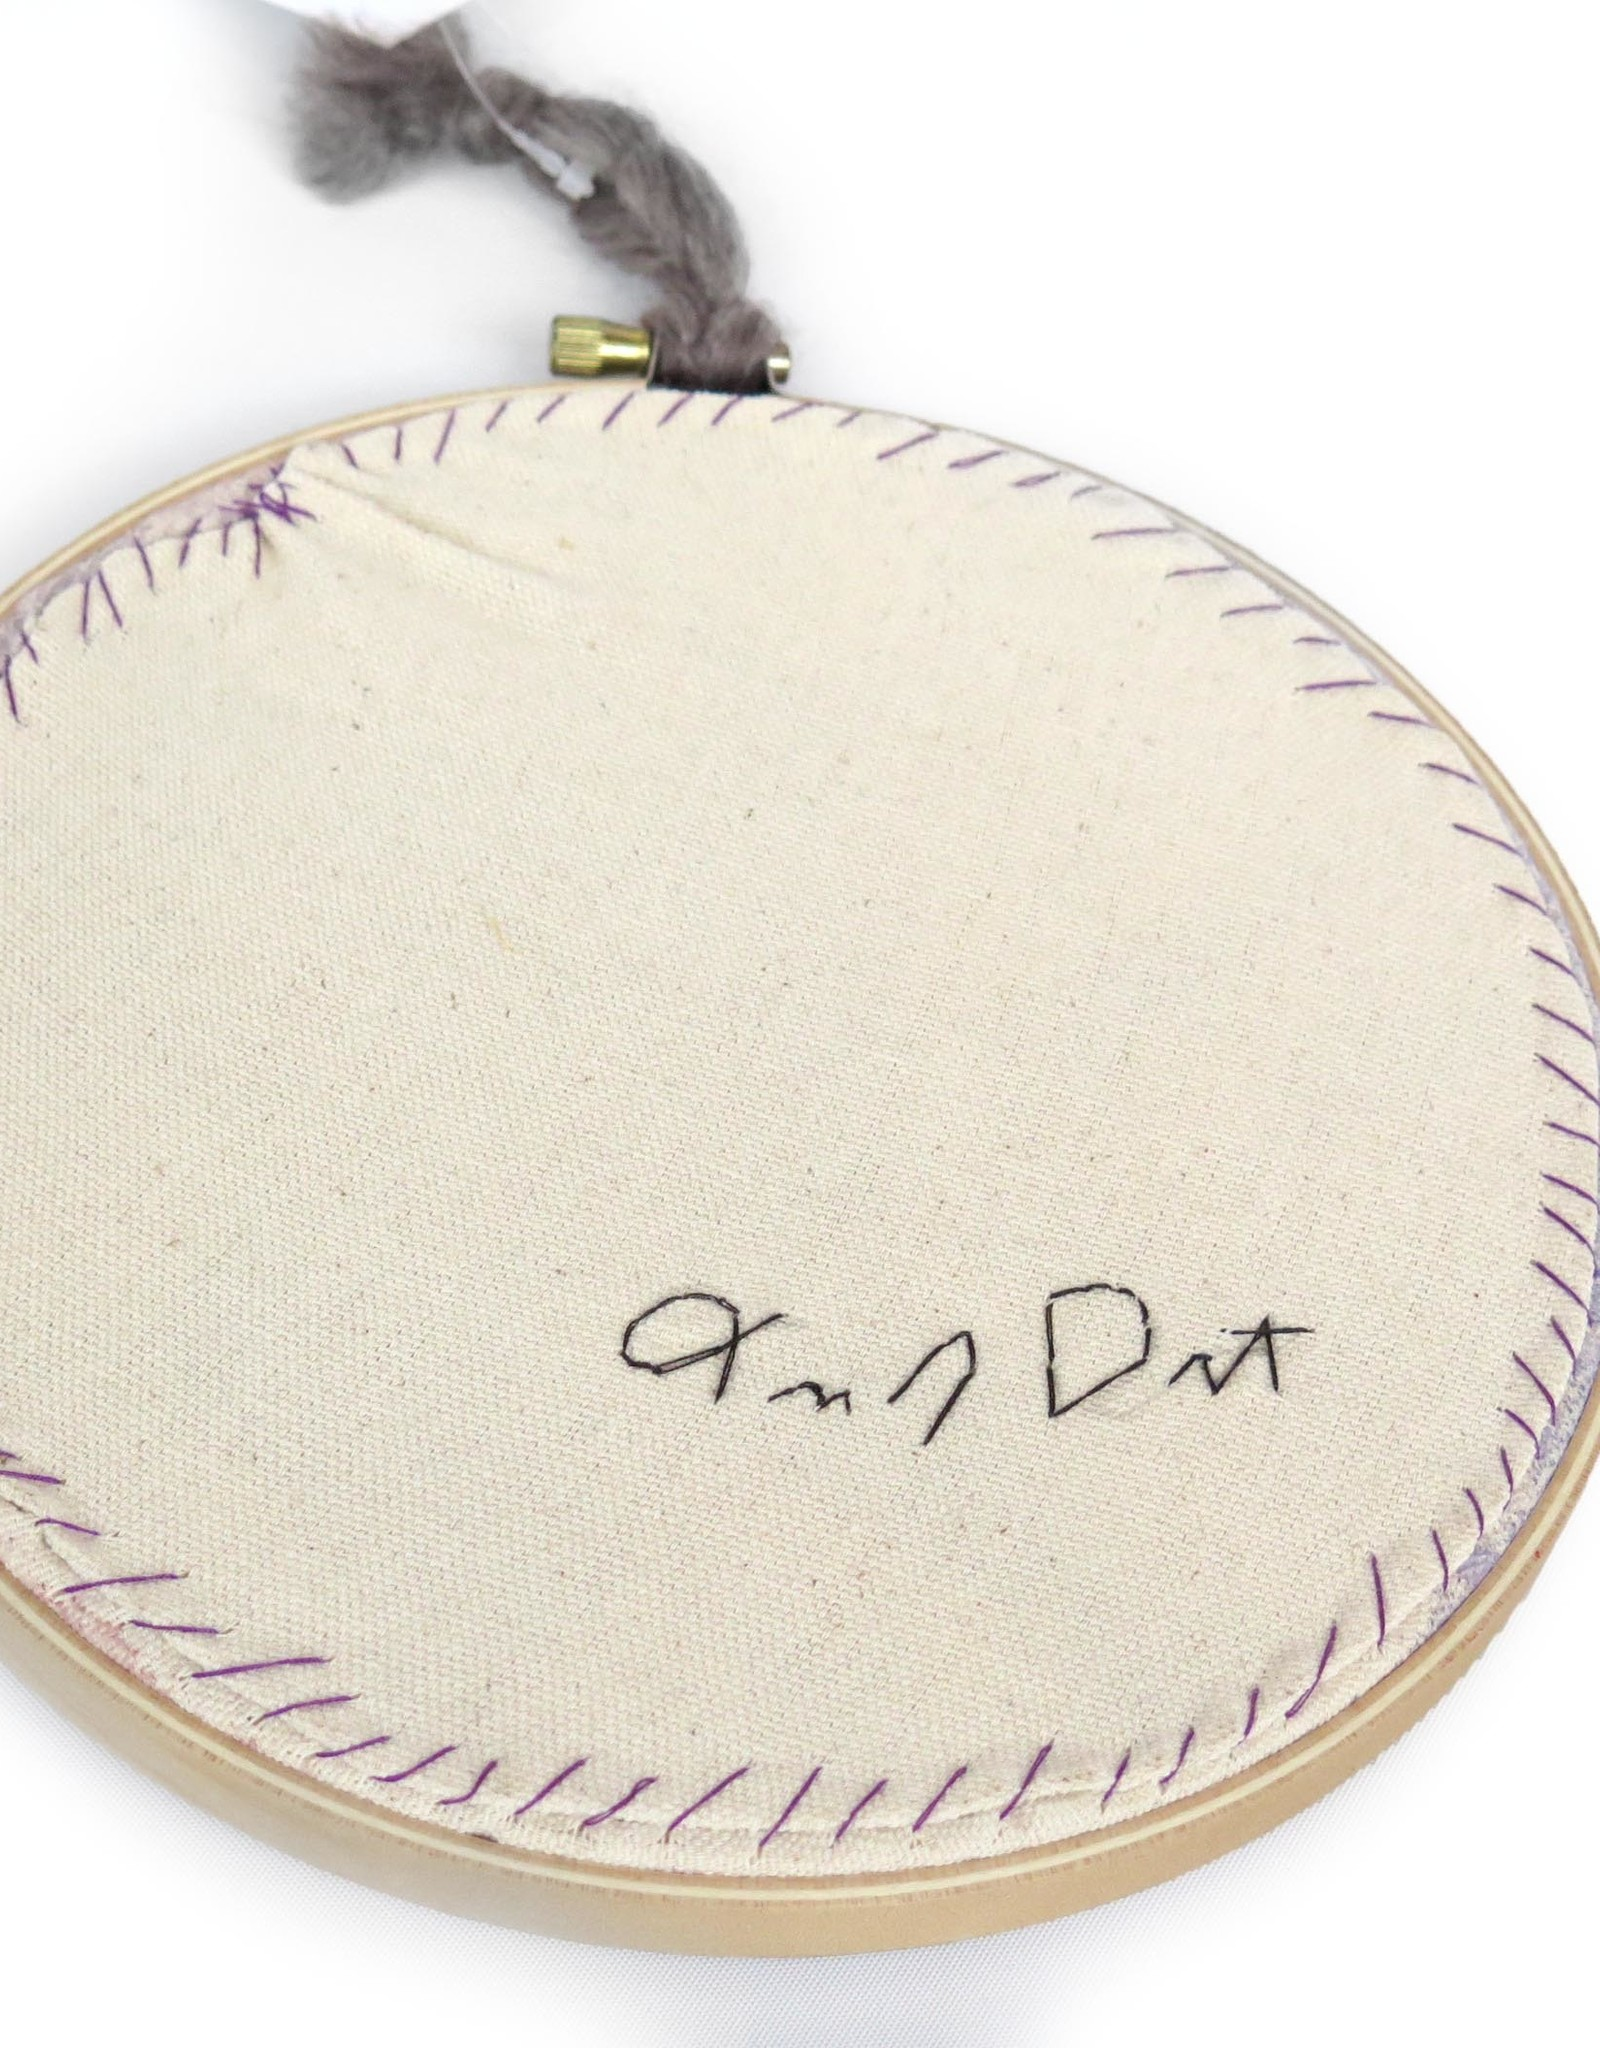 """Handcrafted by Tracey Jean 7"""" Hoop Art by Tracey Jean"""